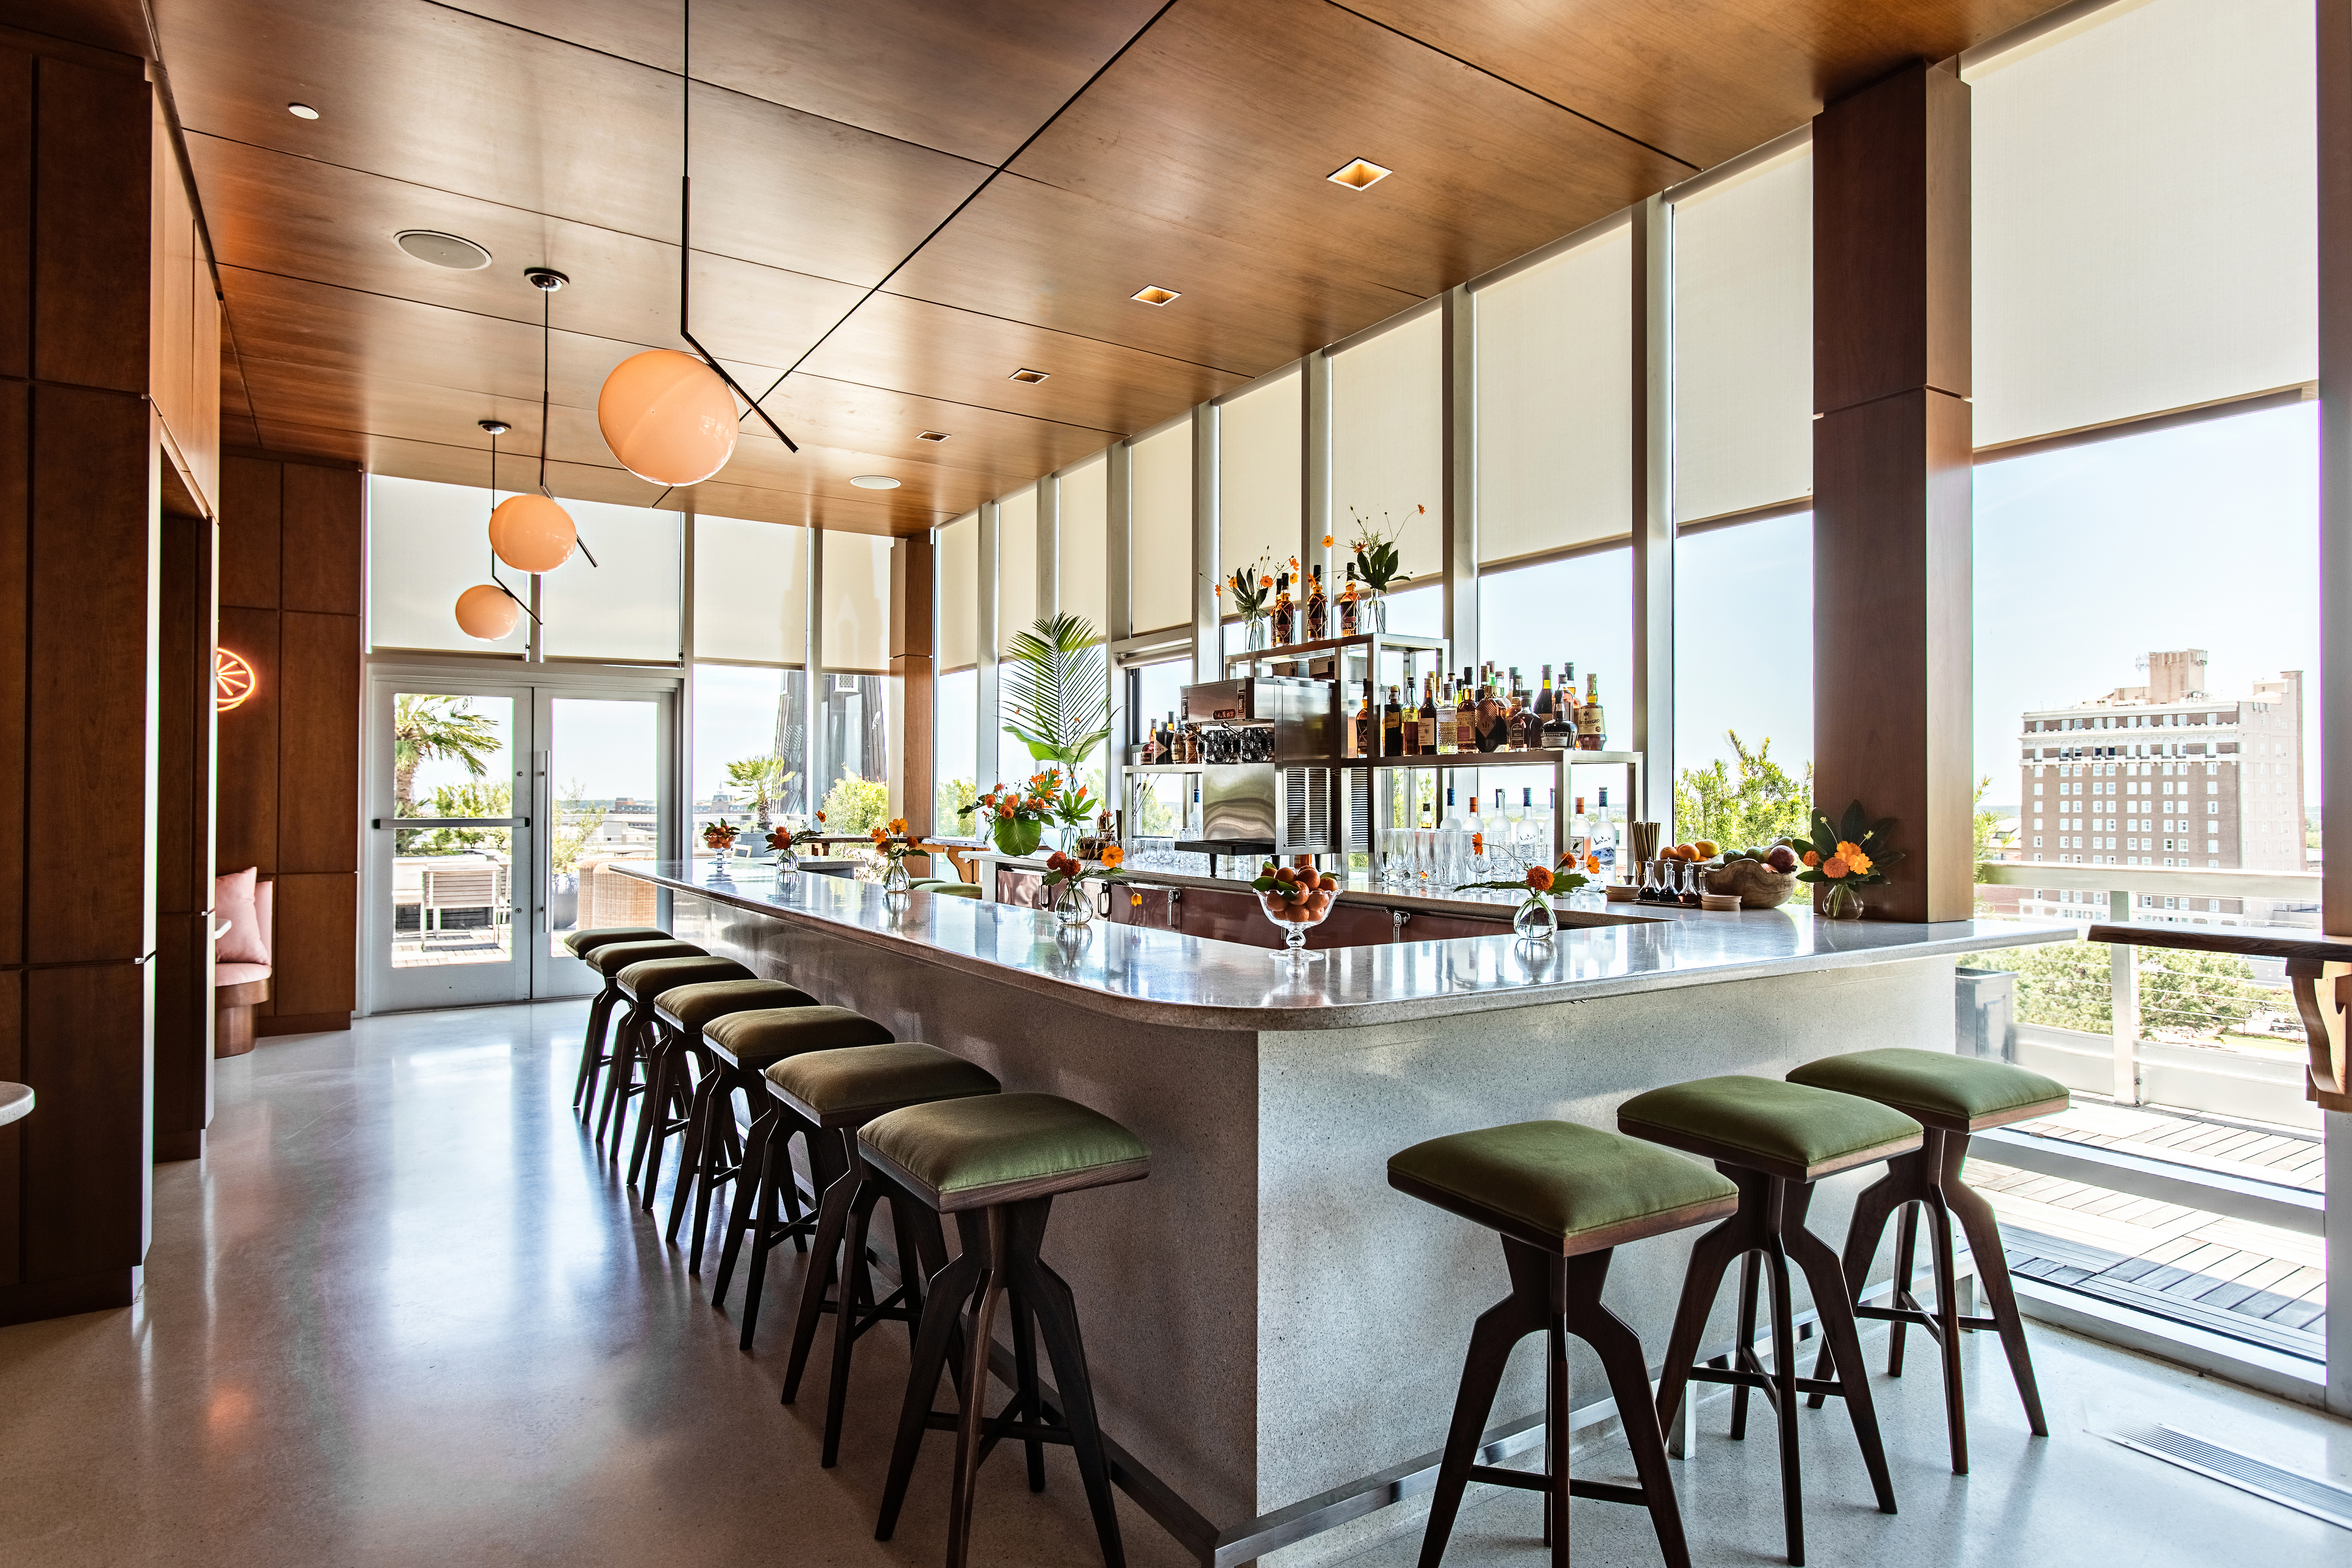 Workstead S Citrus Club At The Dewberry Takes Mid Century Modern